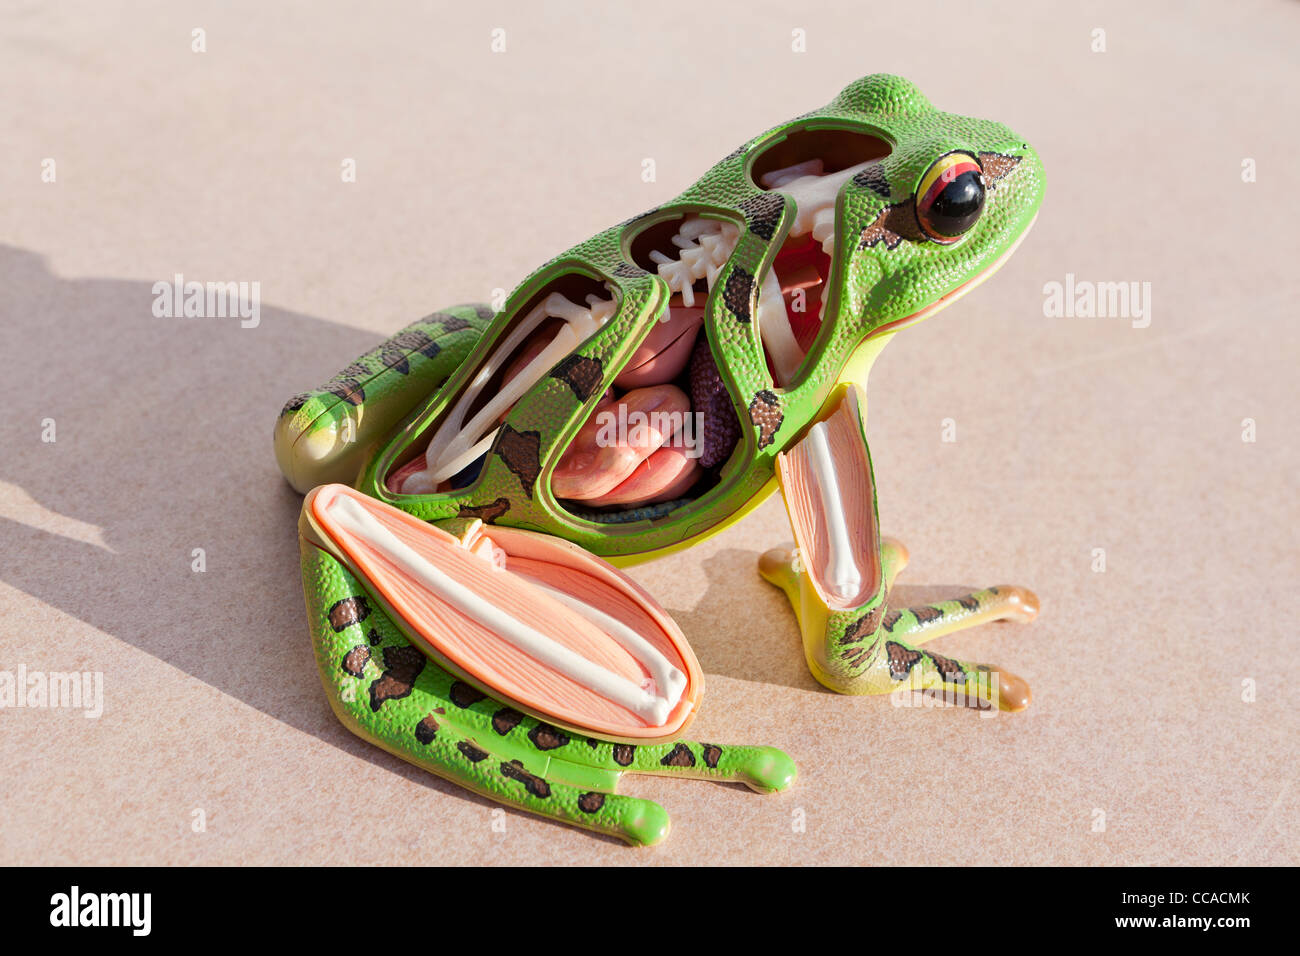 Frog anatomy model Stock Photo: 42026115 - Alamy